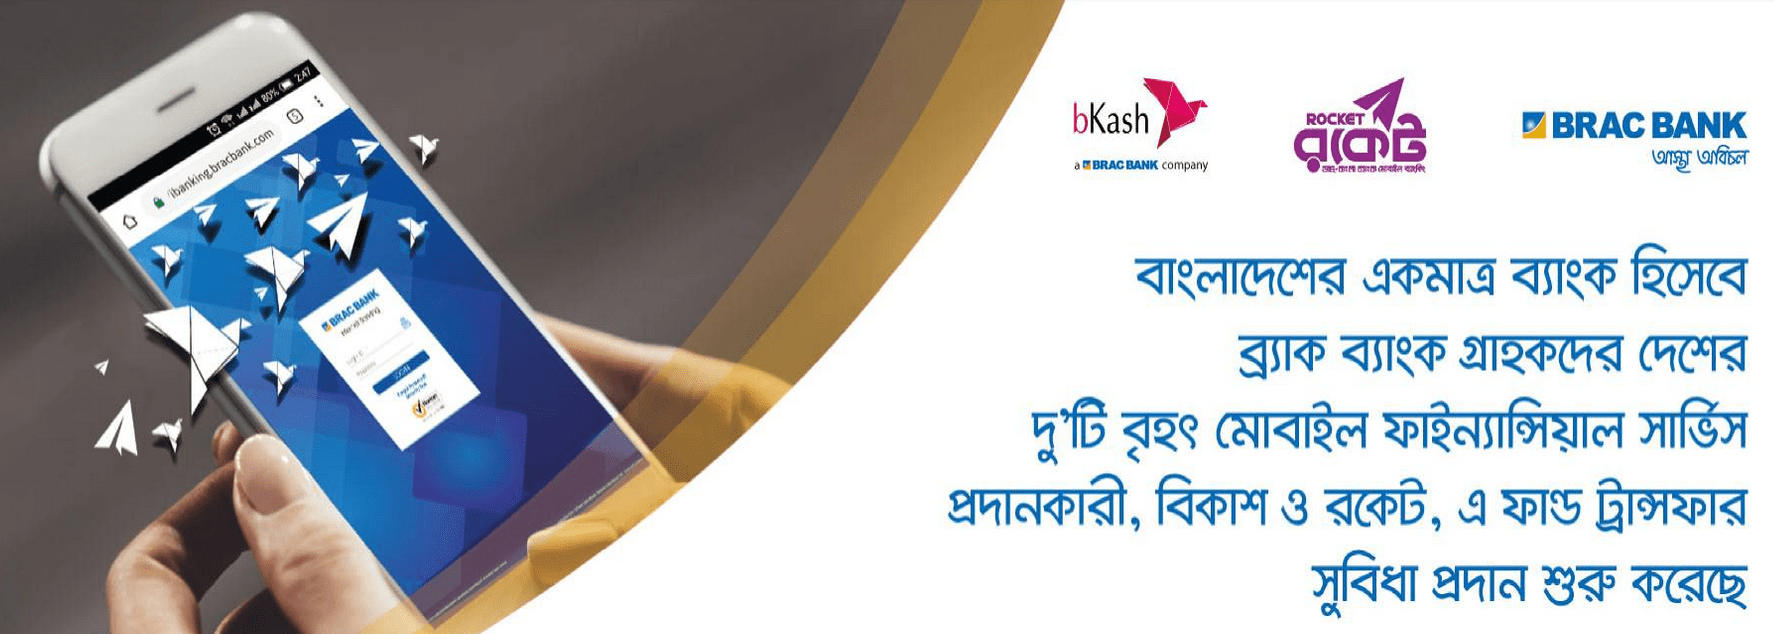 Top 5 Internet Banking Apps in Bangladesh (2019) - An